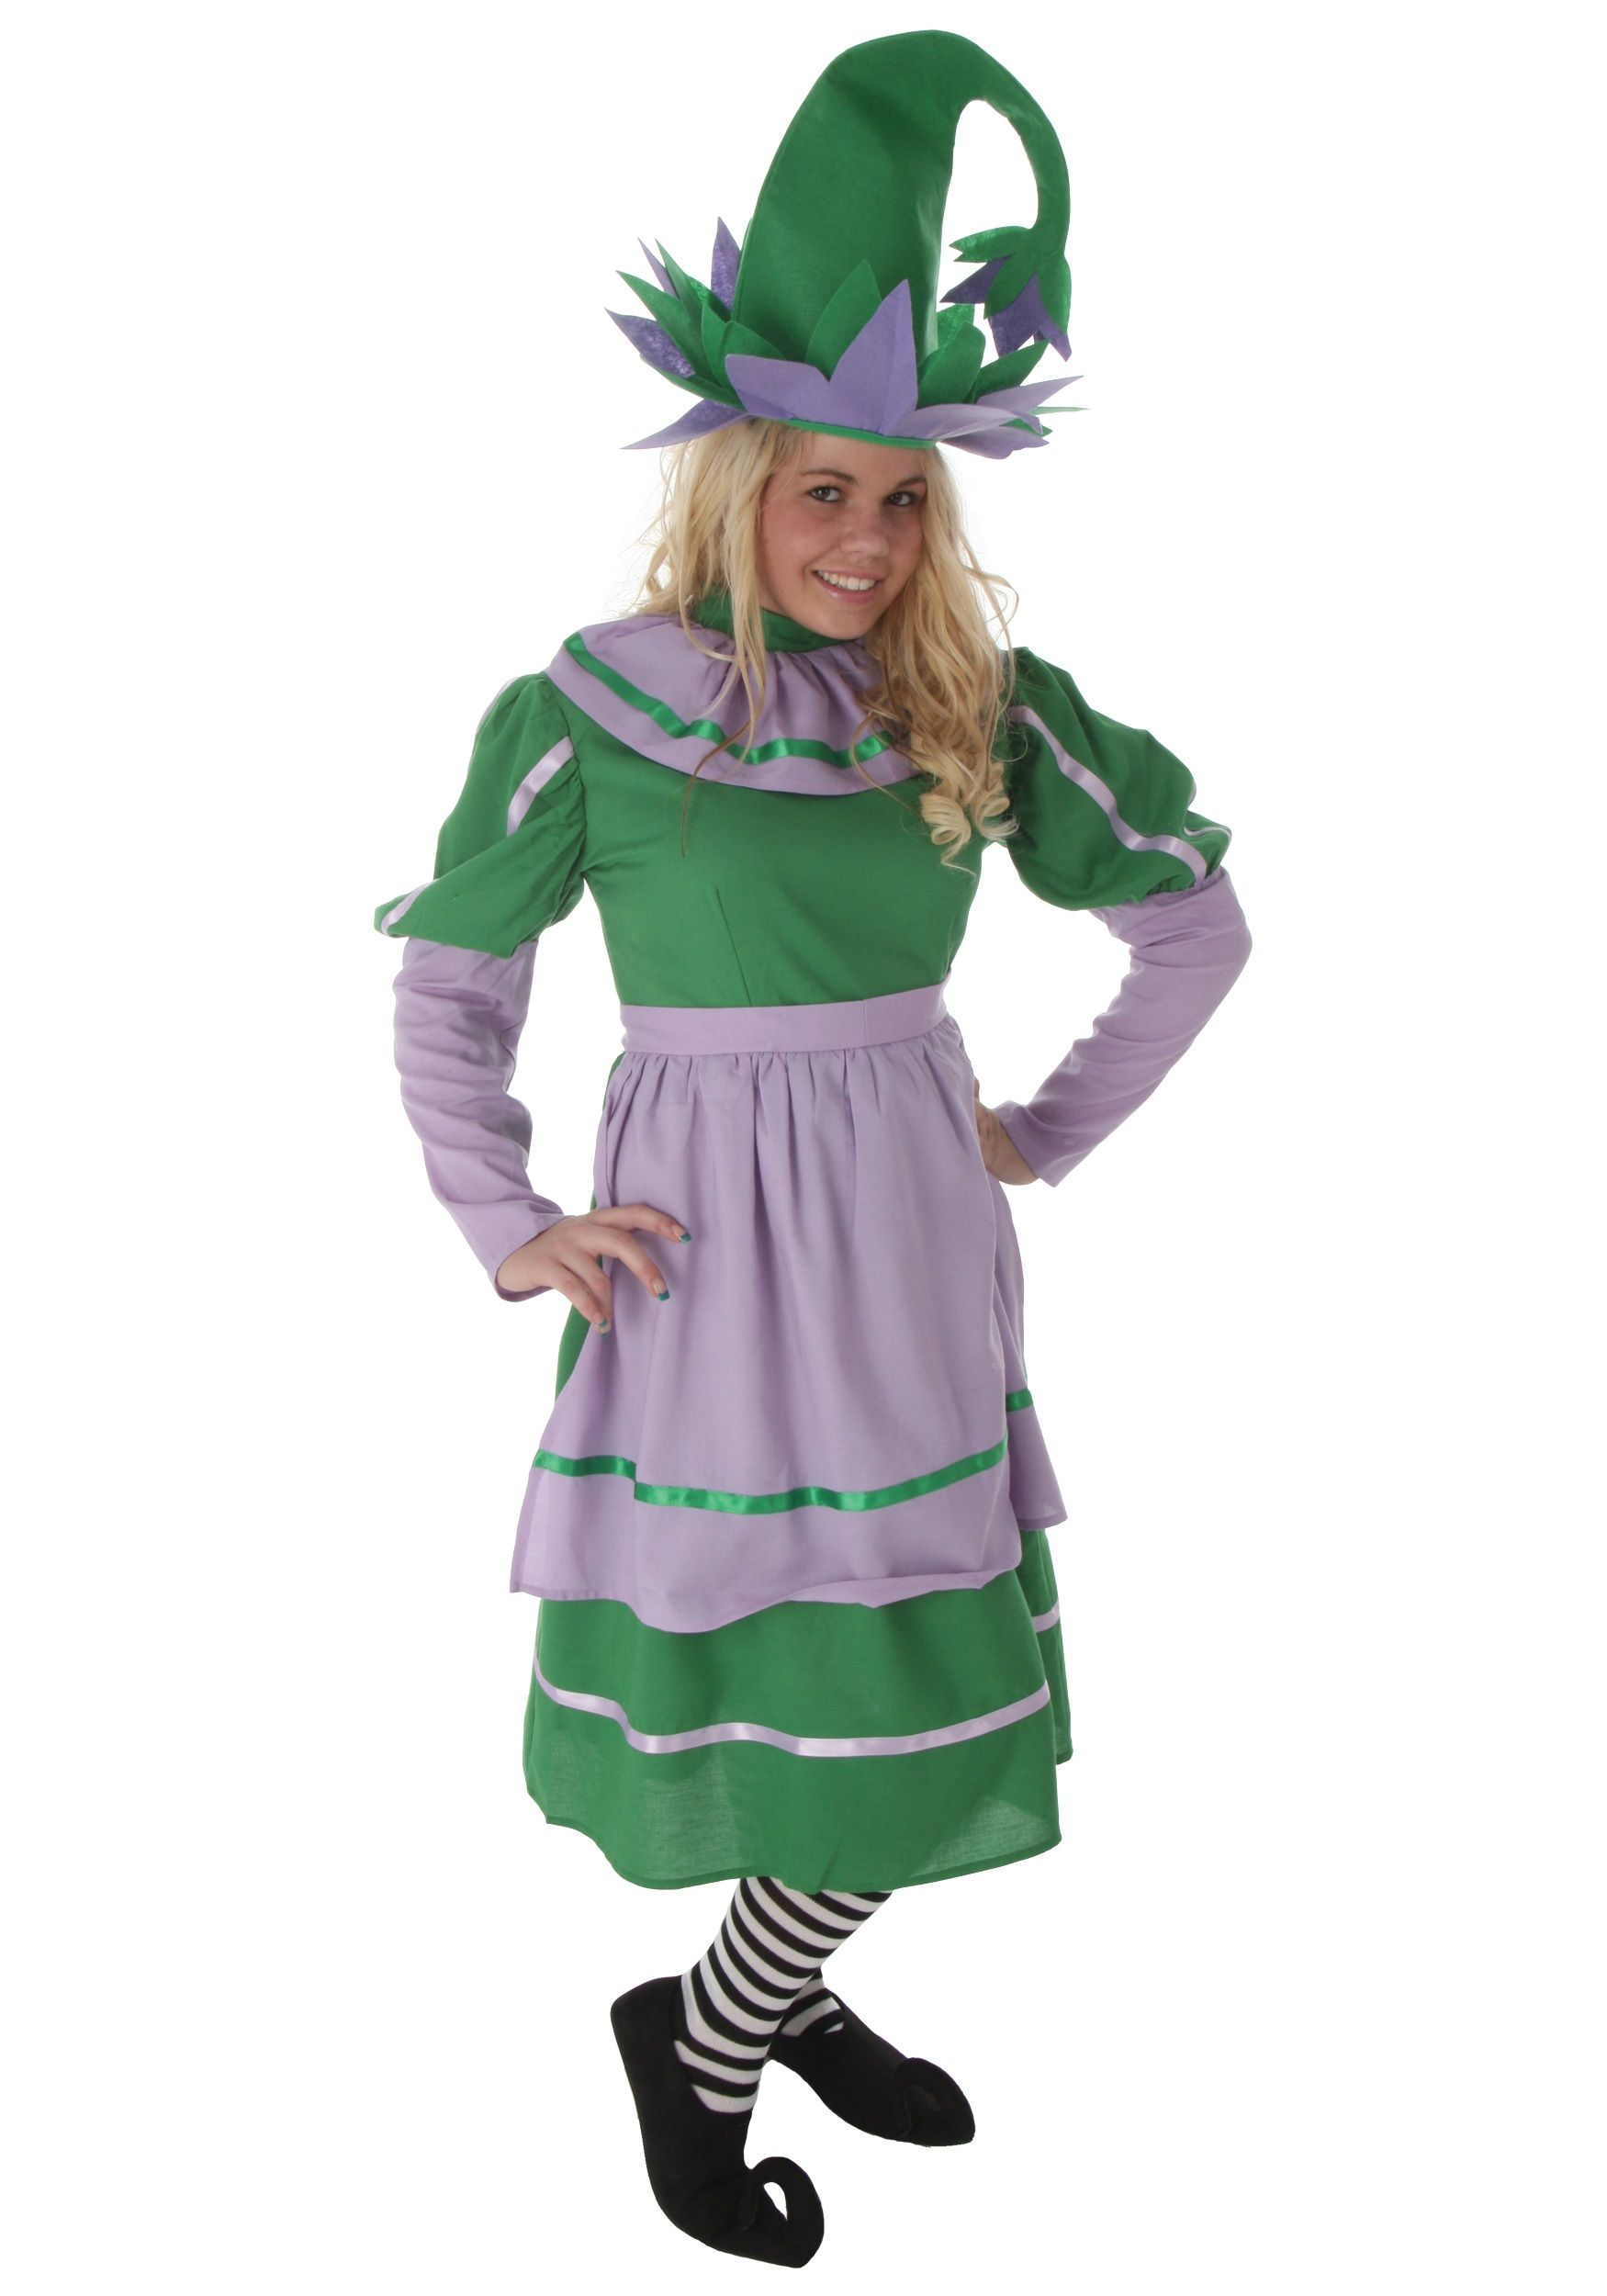 Wizard of Oz Munchkin Costume | Womenu0027s Munchkin Costume - Munchkin Girl Wizard of Oz Costumes  sc 1 st  Pinterest : wizard of oz character costumes  - Germanpascual.Com